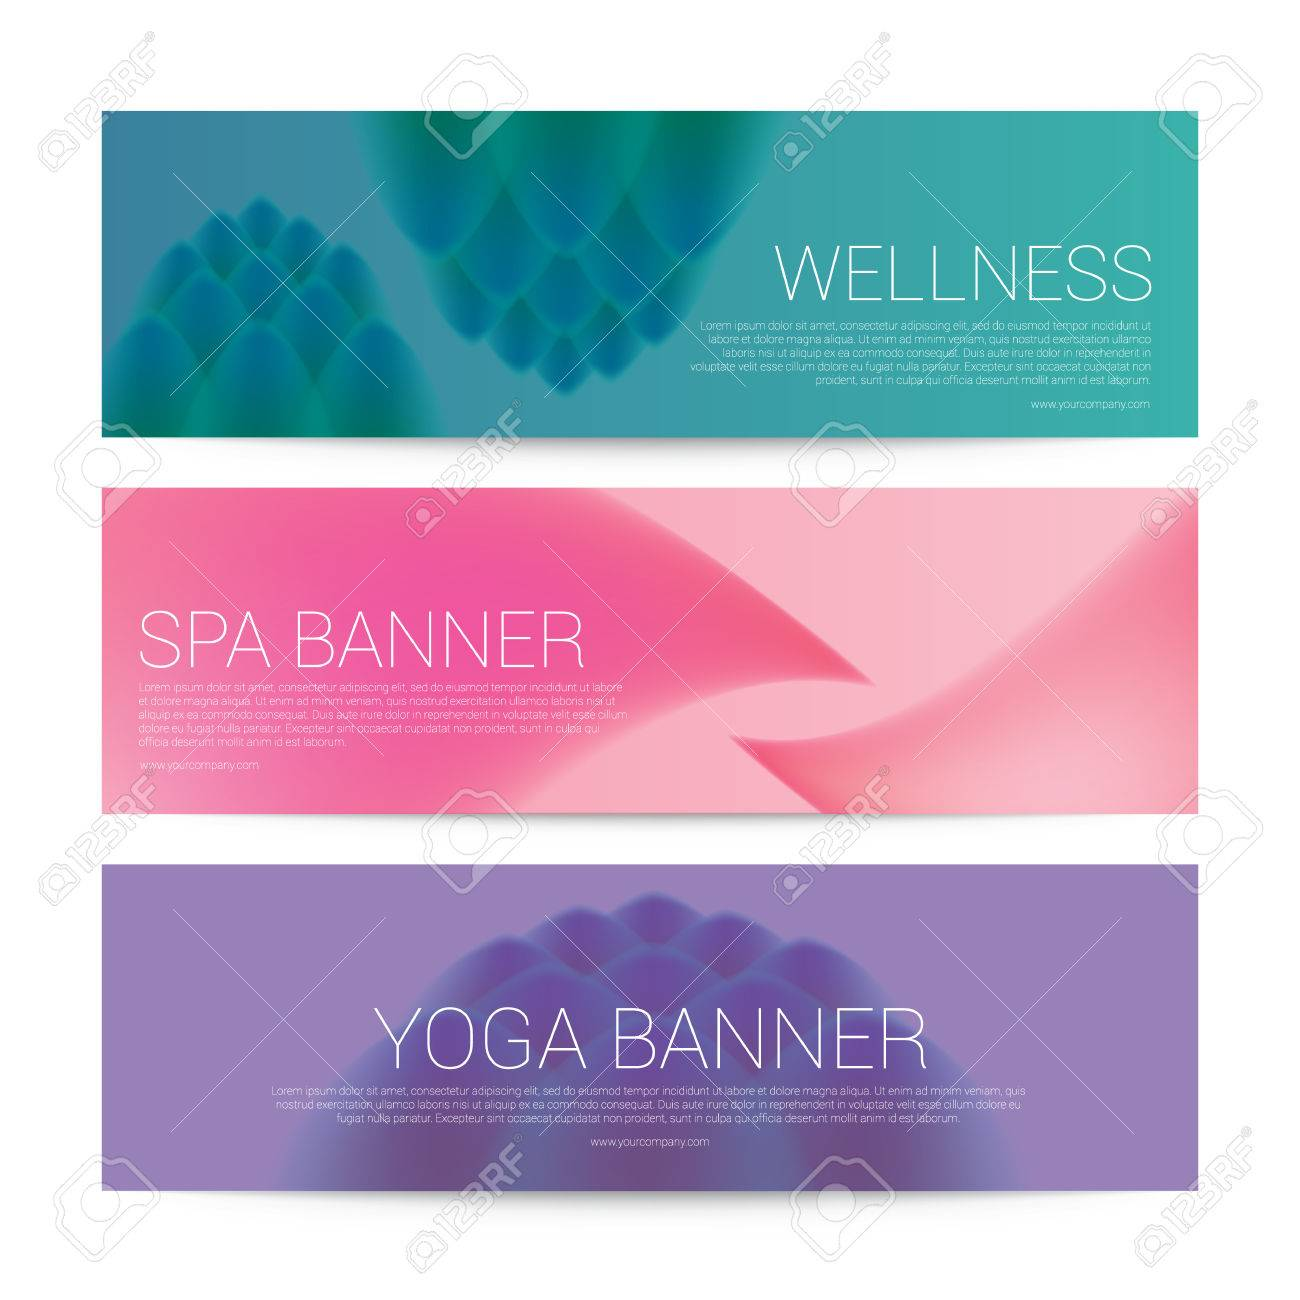 Wellness Spa Yoga Banner Template Menu Cover Illustration Royalty Free Cliparts Vectors And Stock Illustration Image 71133812